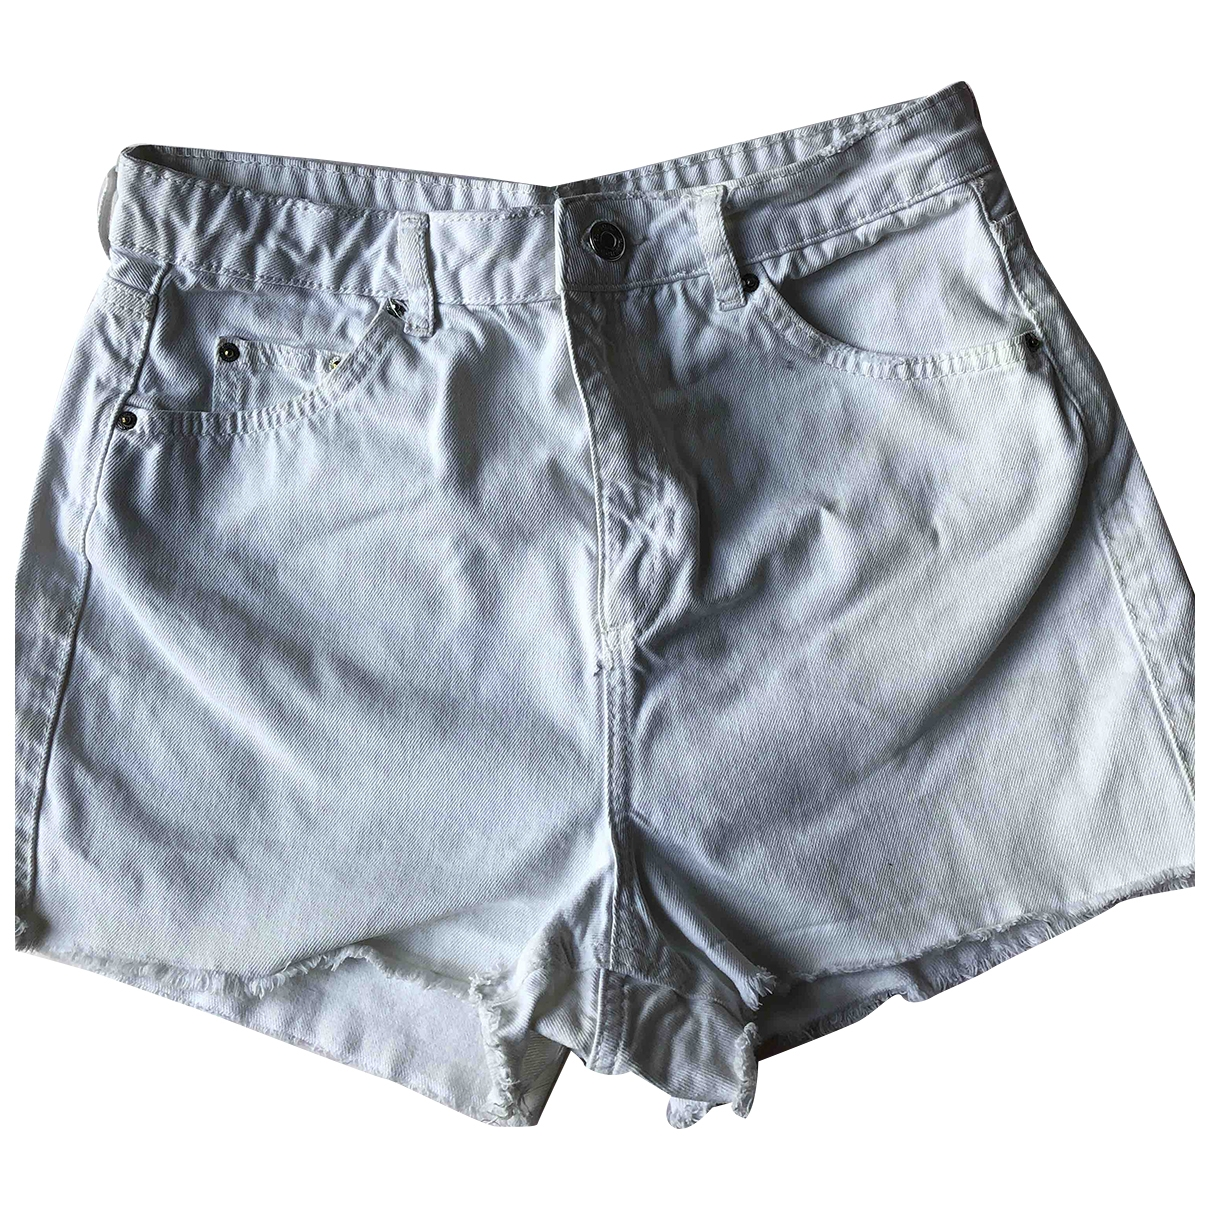 Tophop \N Shorts in  Weiss Baumwolle